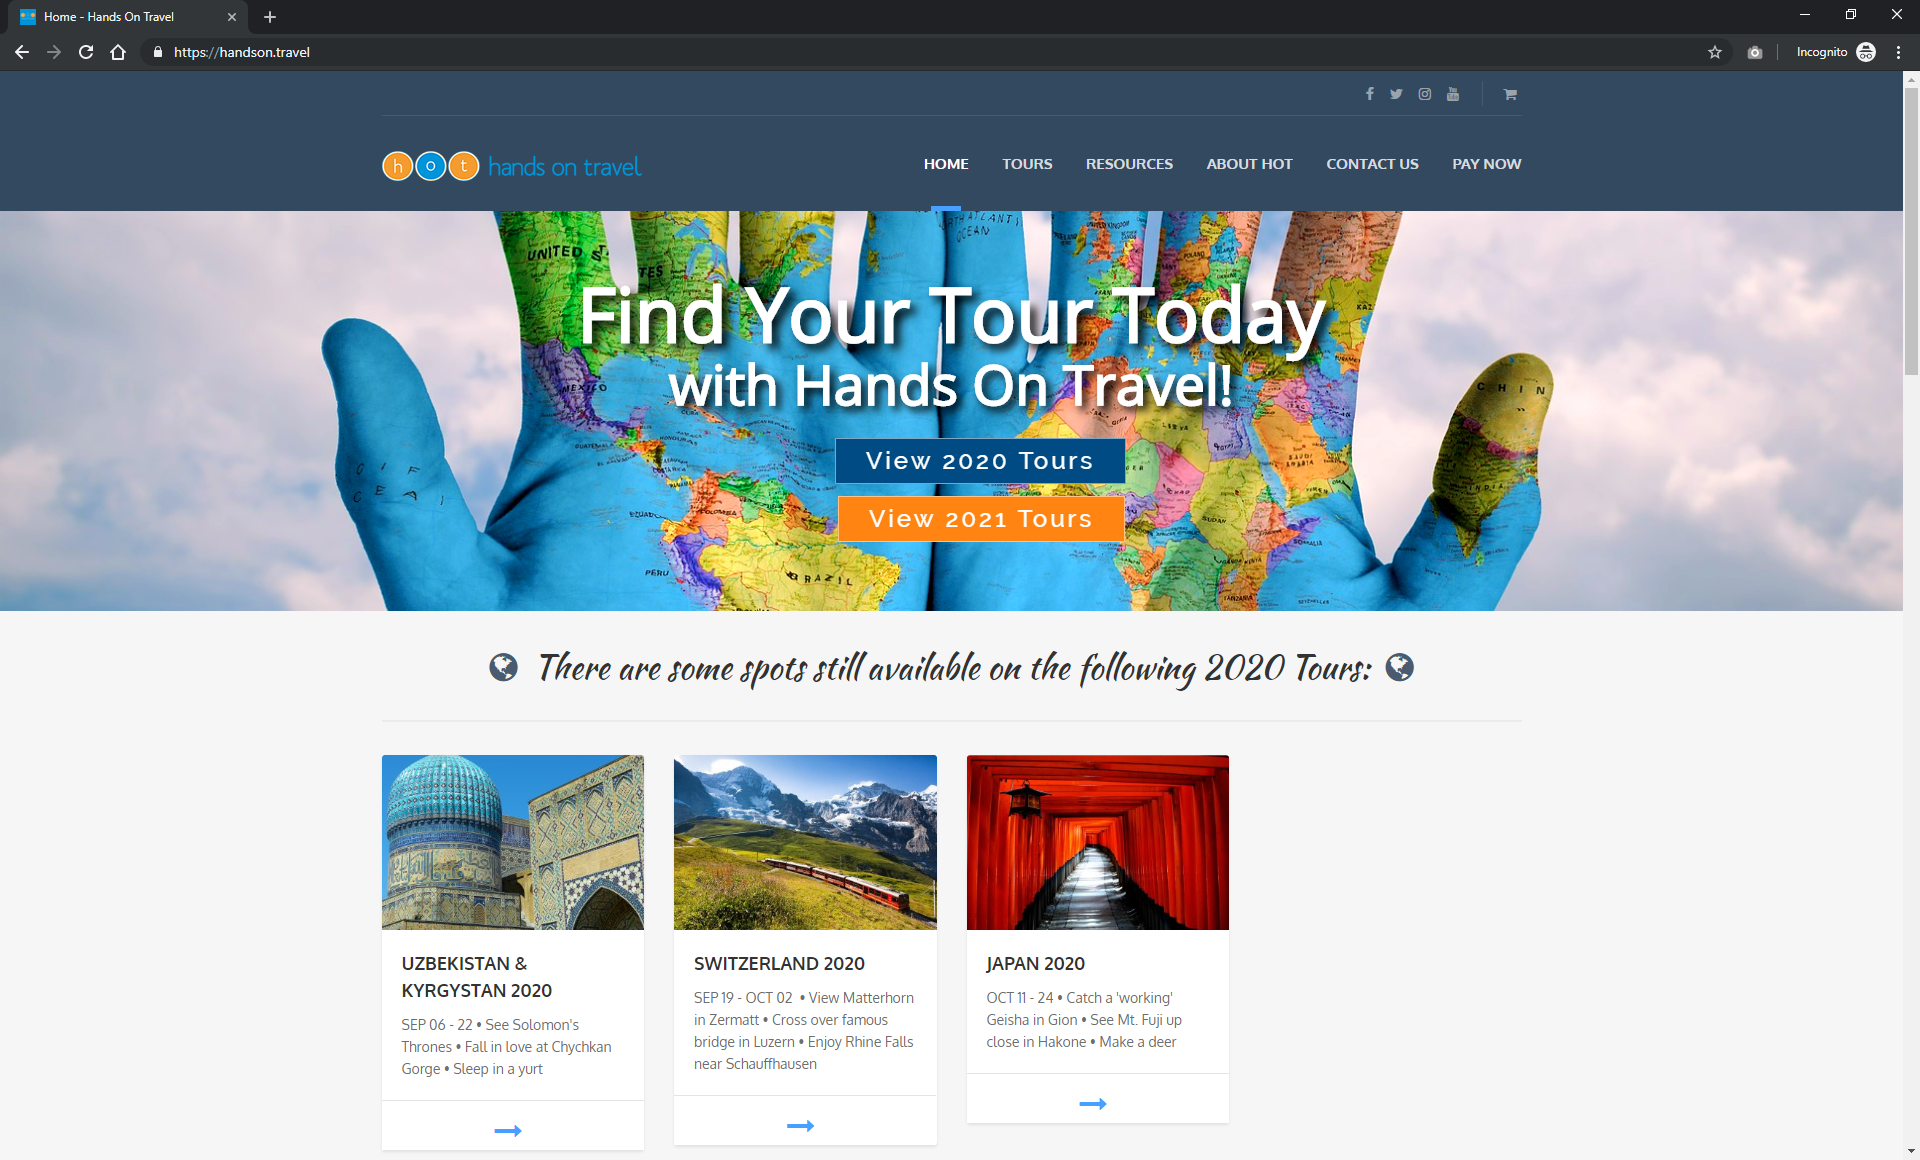 Hands On Travel Website - Providing unique tours around the world in sign language. Book your next tour with one of our Deaf guides!